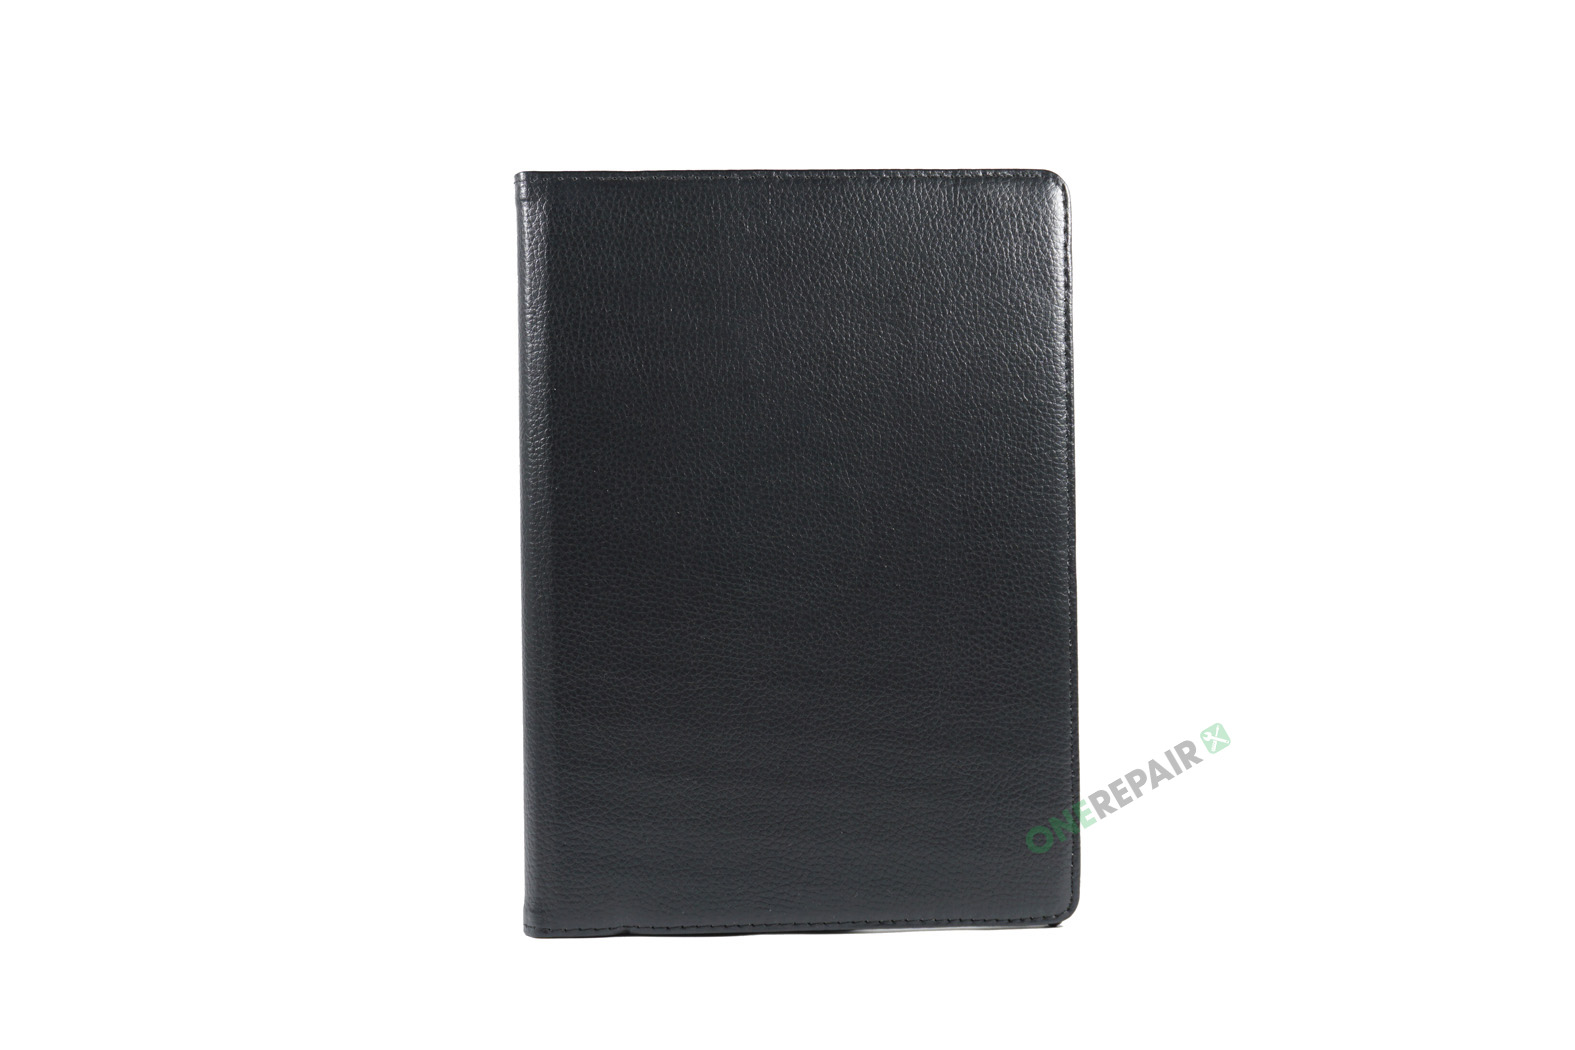 351017_iPad_Air_A1474_A1475_A1476_Flipcover_Cover_Sort_OneRepair_00002